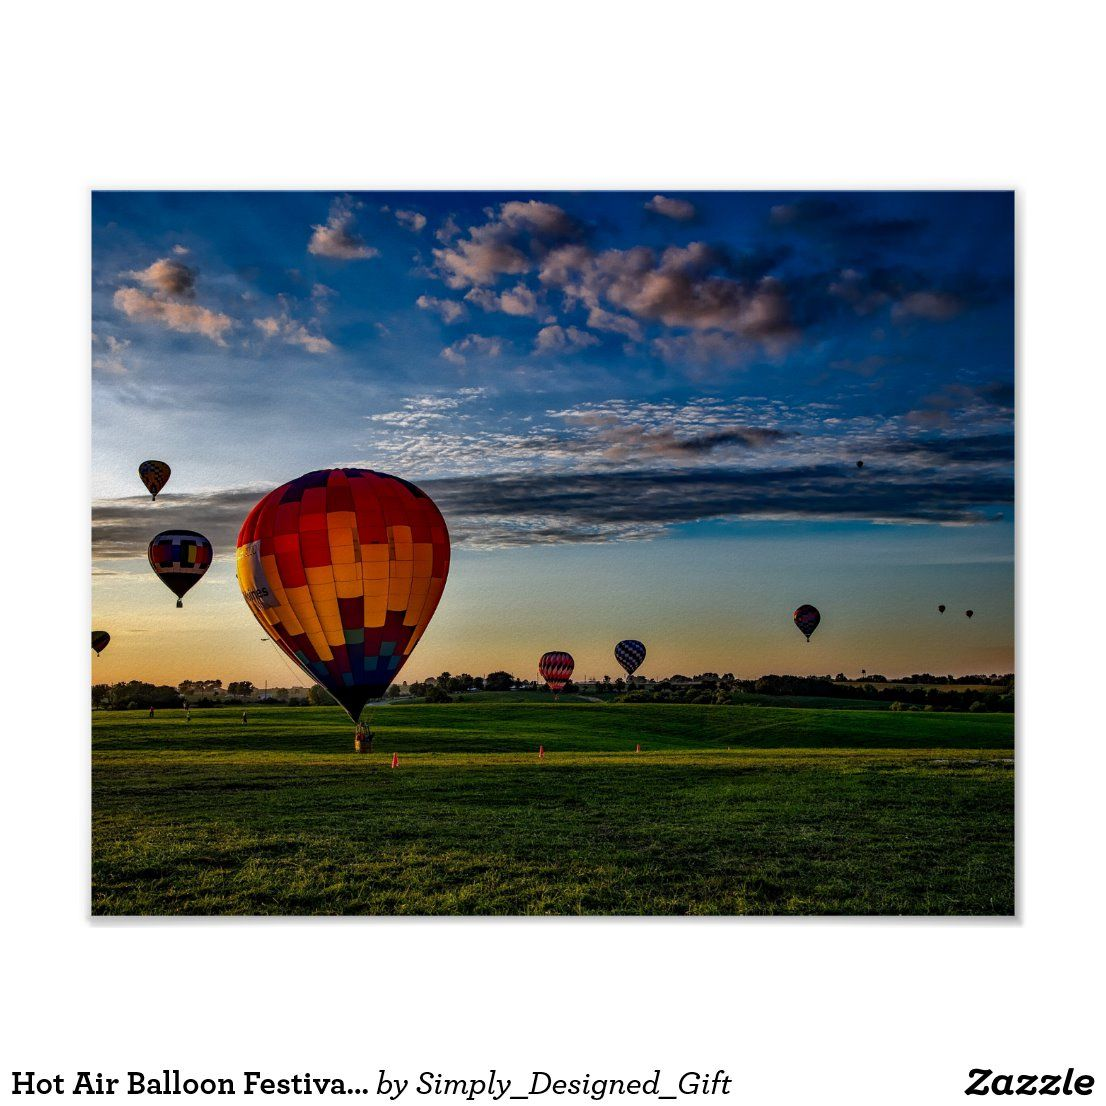 Hot Air Balloon Festival in a Beautiful Cloudy Sky Poster